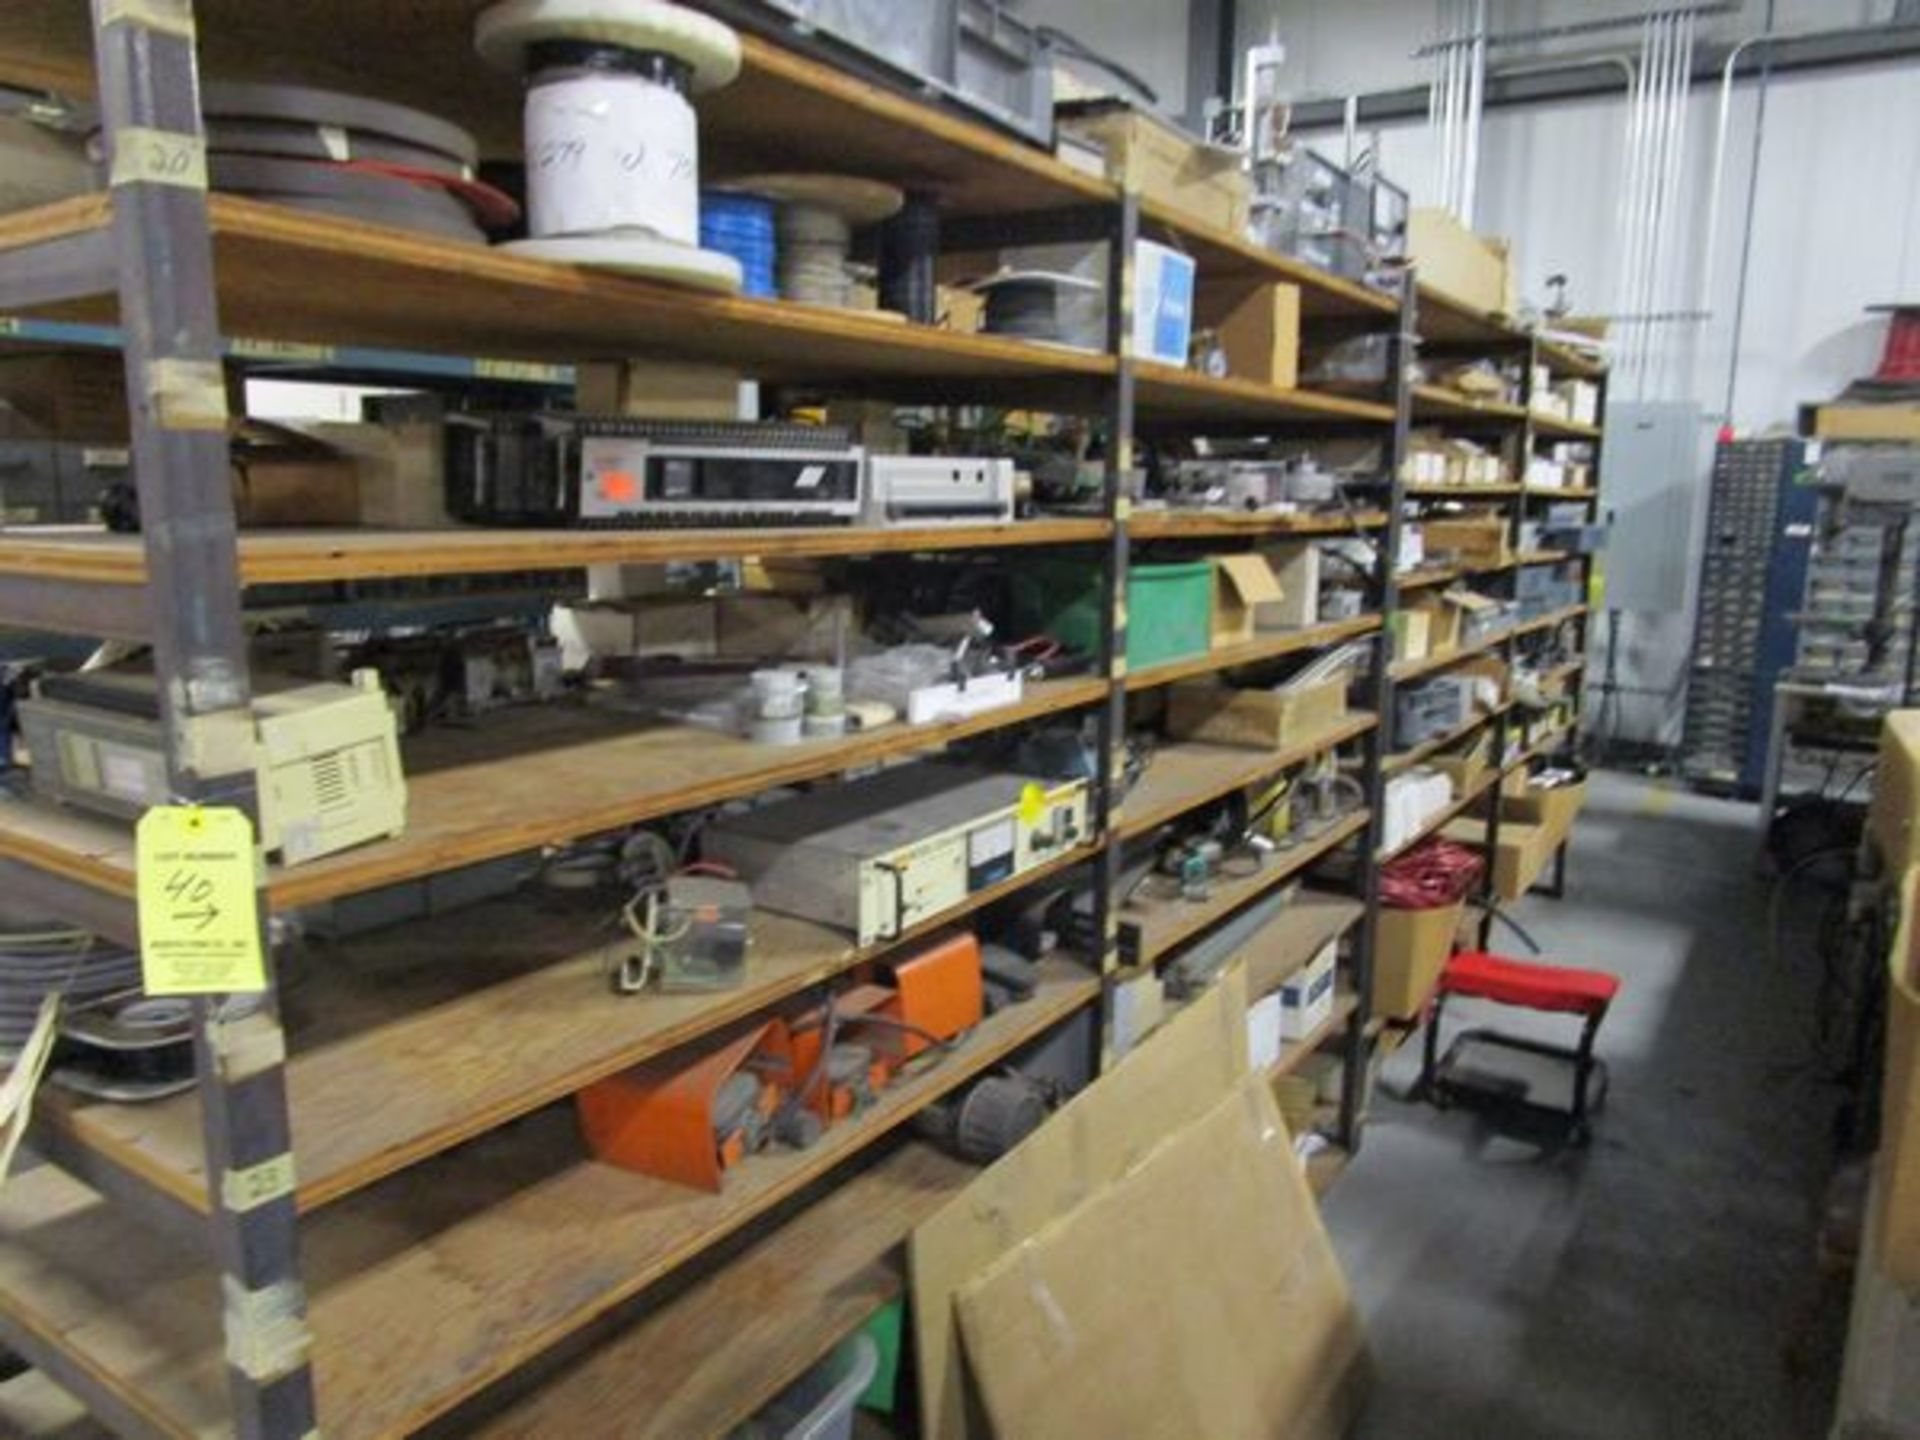 Lot Meters, Electrical Supplies, Wire, Components, Pins, Gages, Solderer, Etc. in 4 Sections